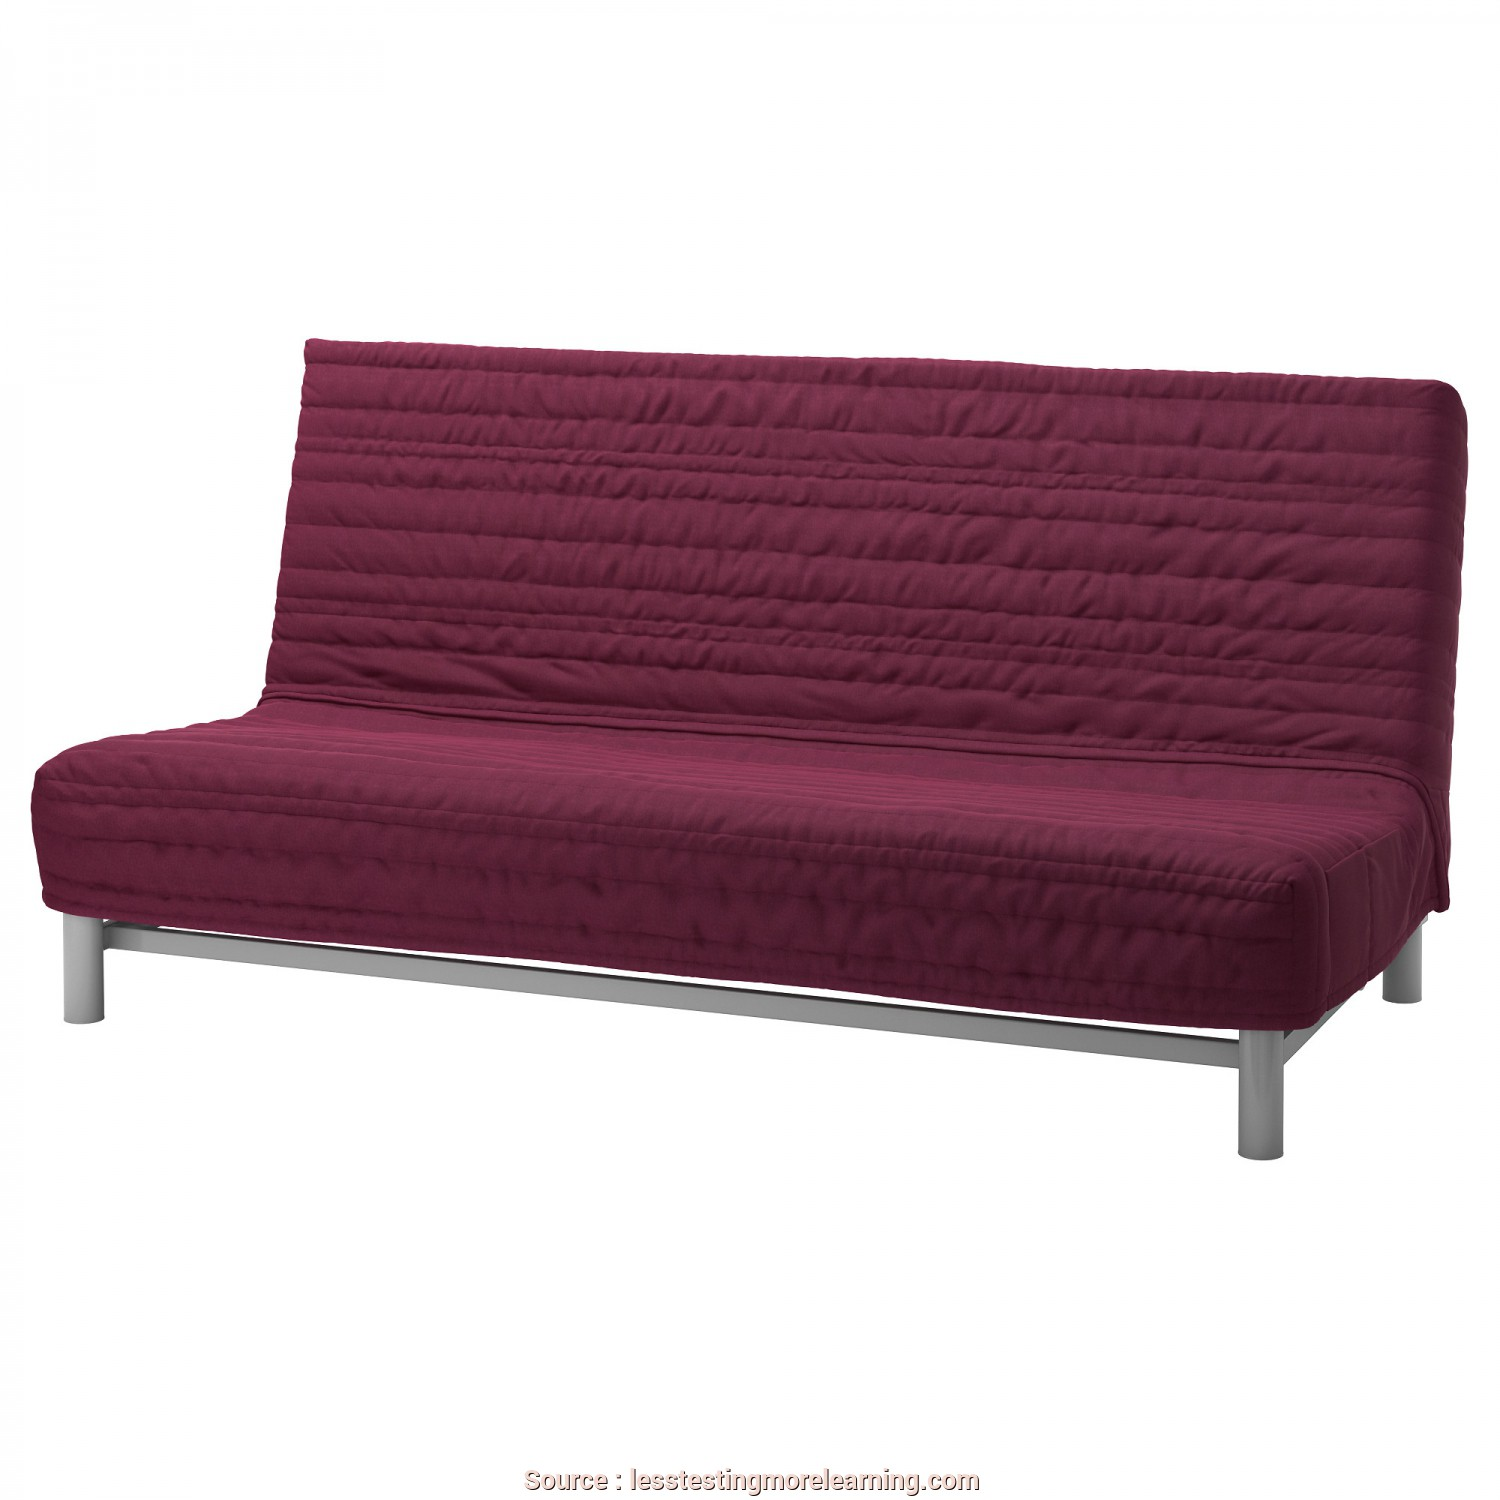 Futon Ikea Sofa Bed, Rustico Furniture: Sleeper Chair Ikea With Different Styles, Fabrics To